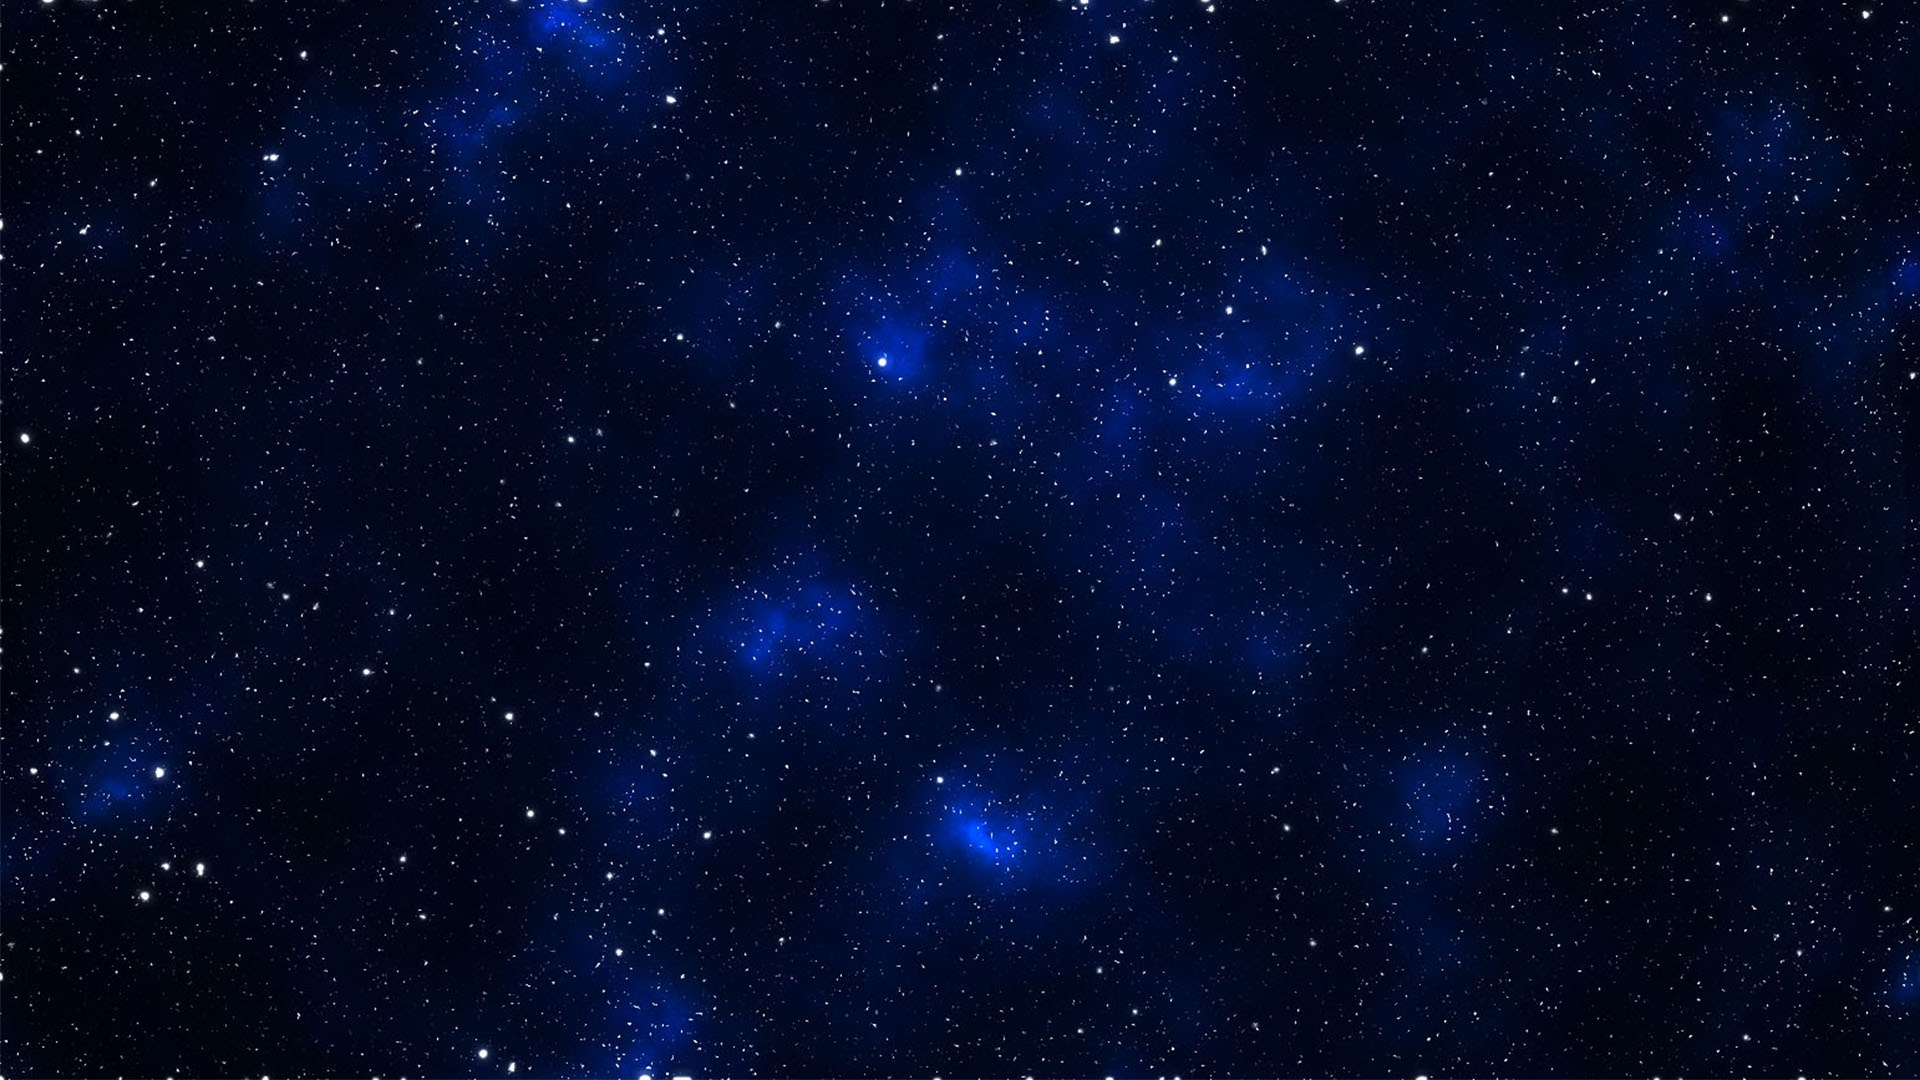 Galaxy Wallpaper 1080p Hd